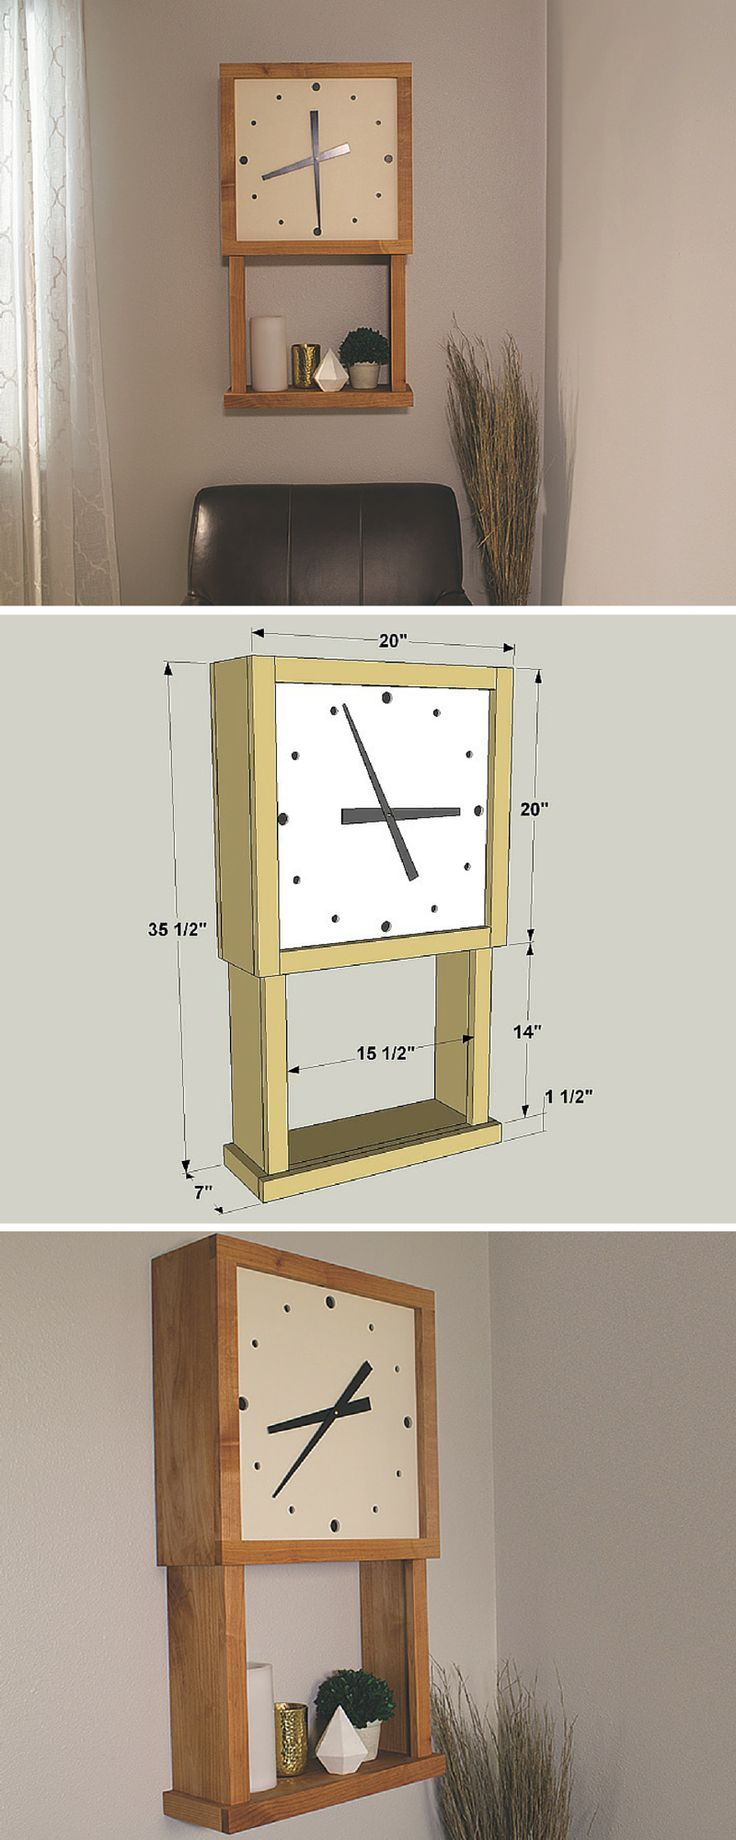 DIY Wall Display Clock | Free printable plans include how-to steps, tools and materials list, cutting list and diagram.